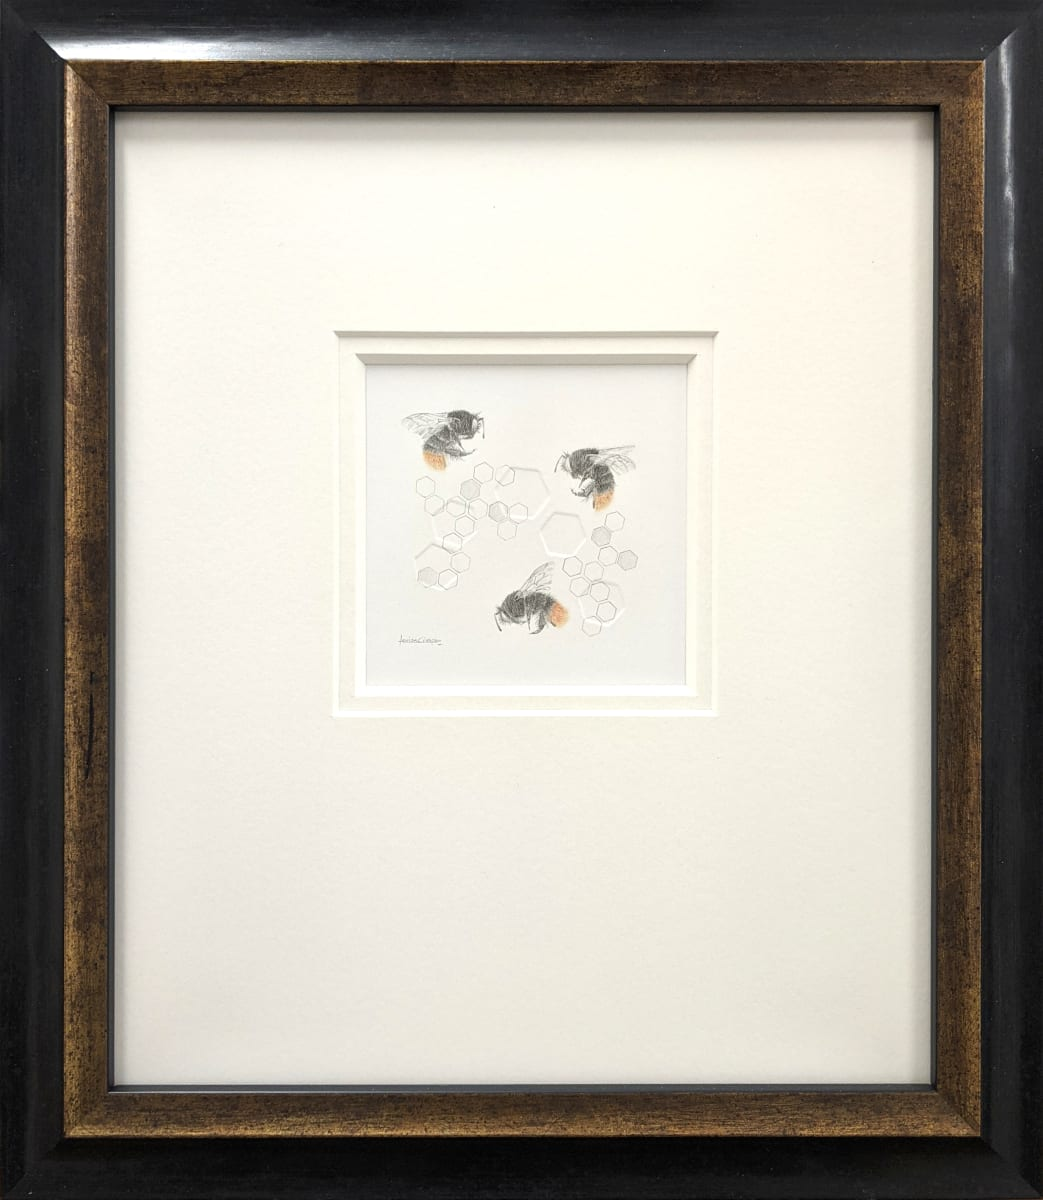 Red tailed BumbleBee 3.35se by Louisa Crispin